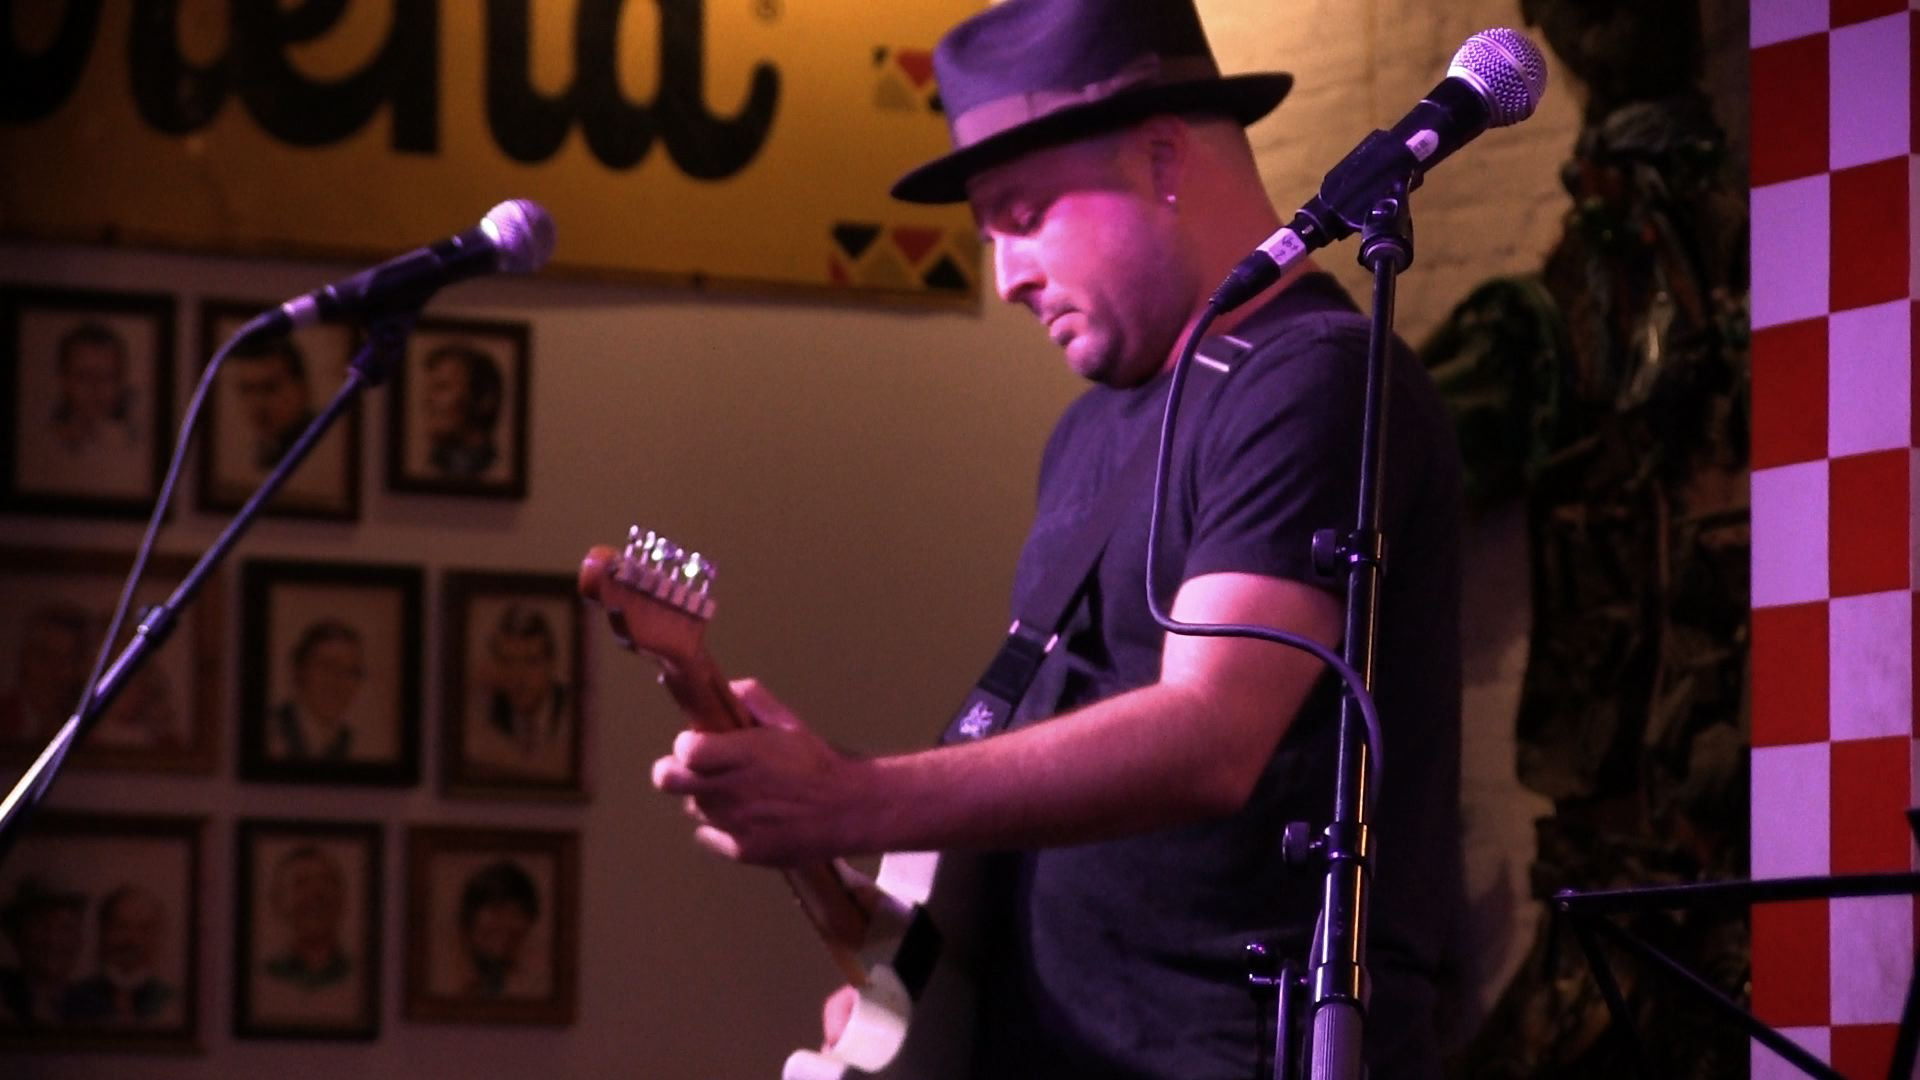 guthrie trapp playing country guitar live in nashville